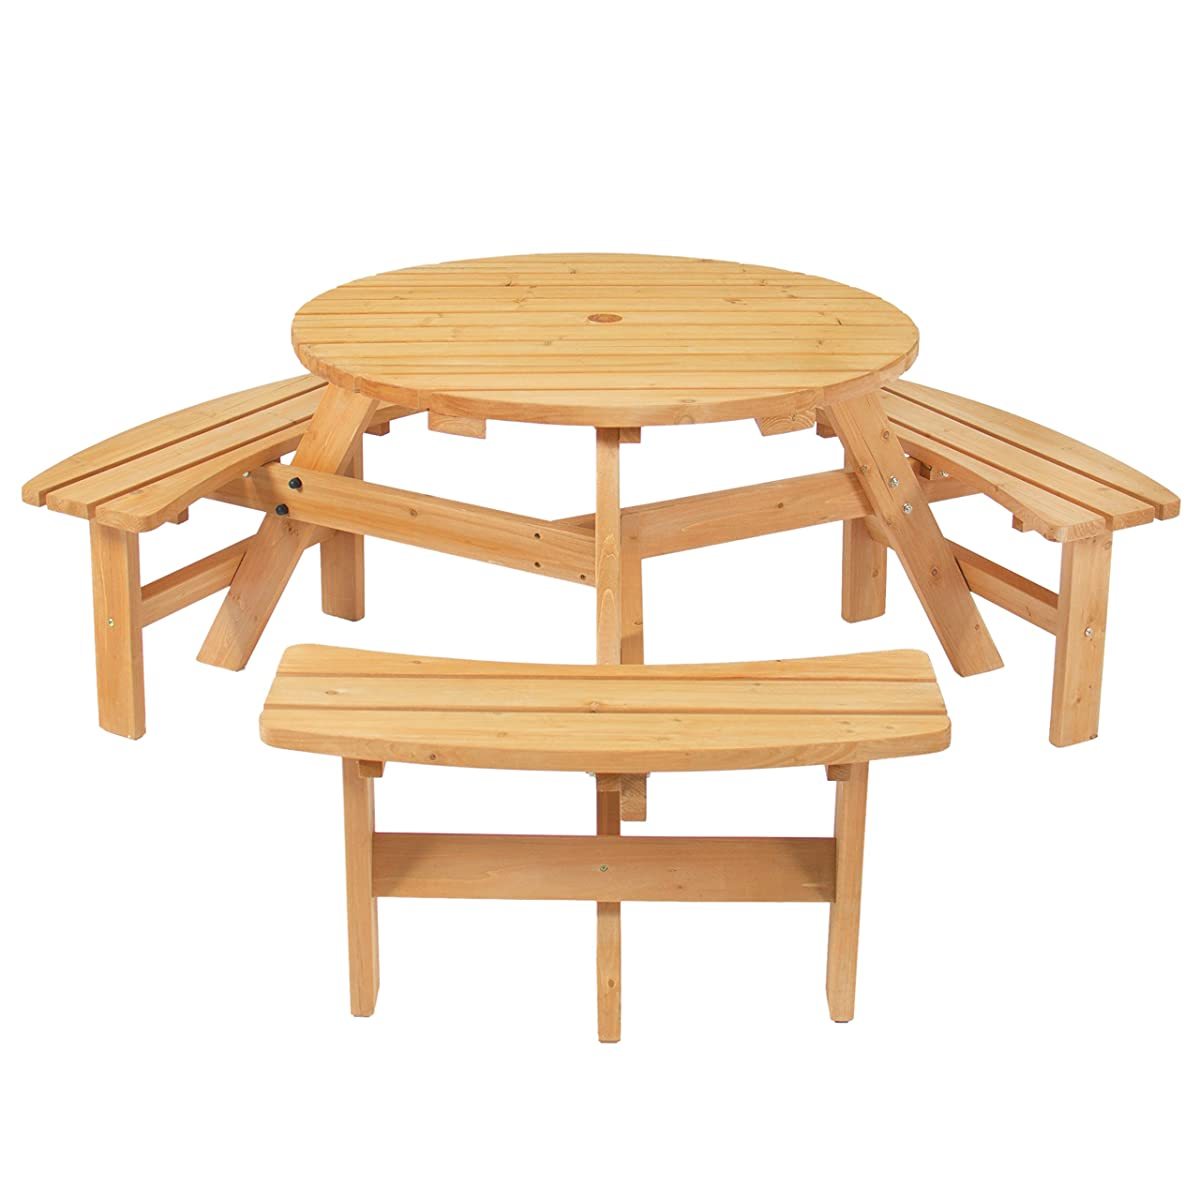 Best Choice Products Outdoor 6 Person Wood Picnic Table Set Natural Finish